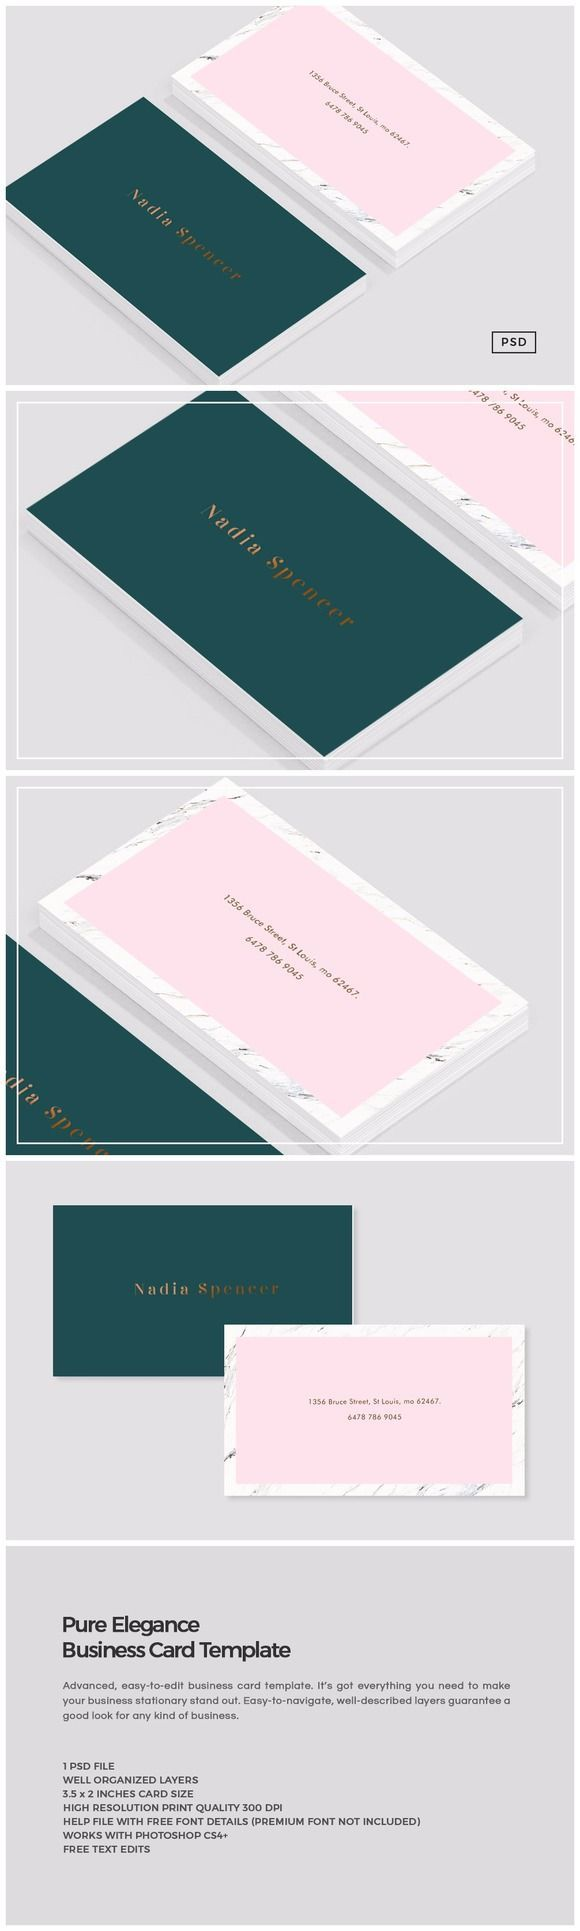 Best 25 best business cards ideas on pinterest creative best 25 best business cards ideas on pinterest creative business card designs business check printing and ups printing magicingreecefo Images